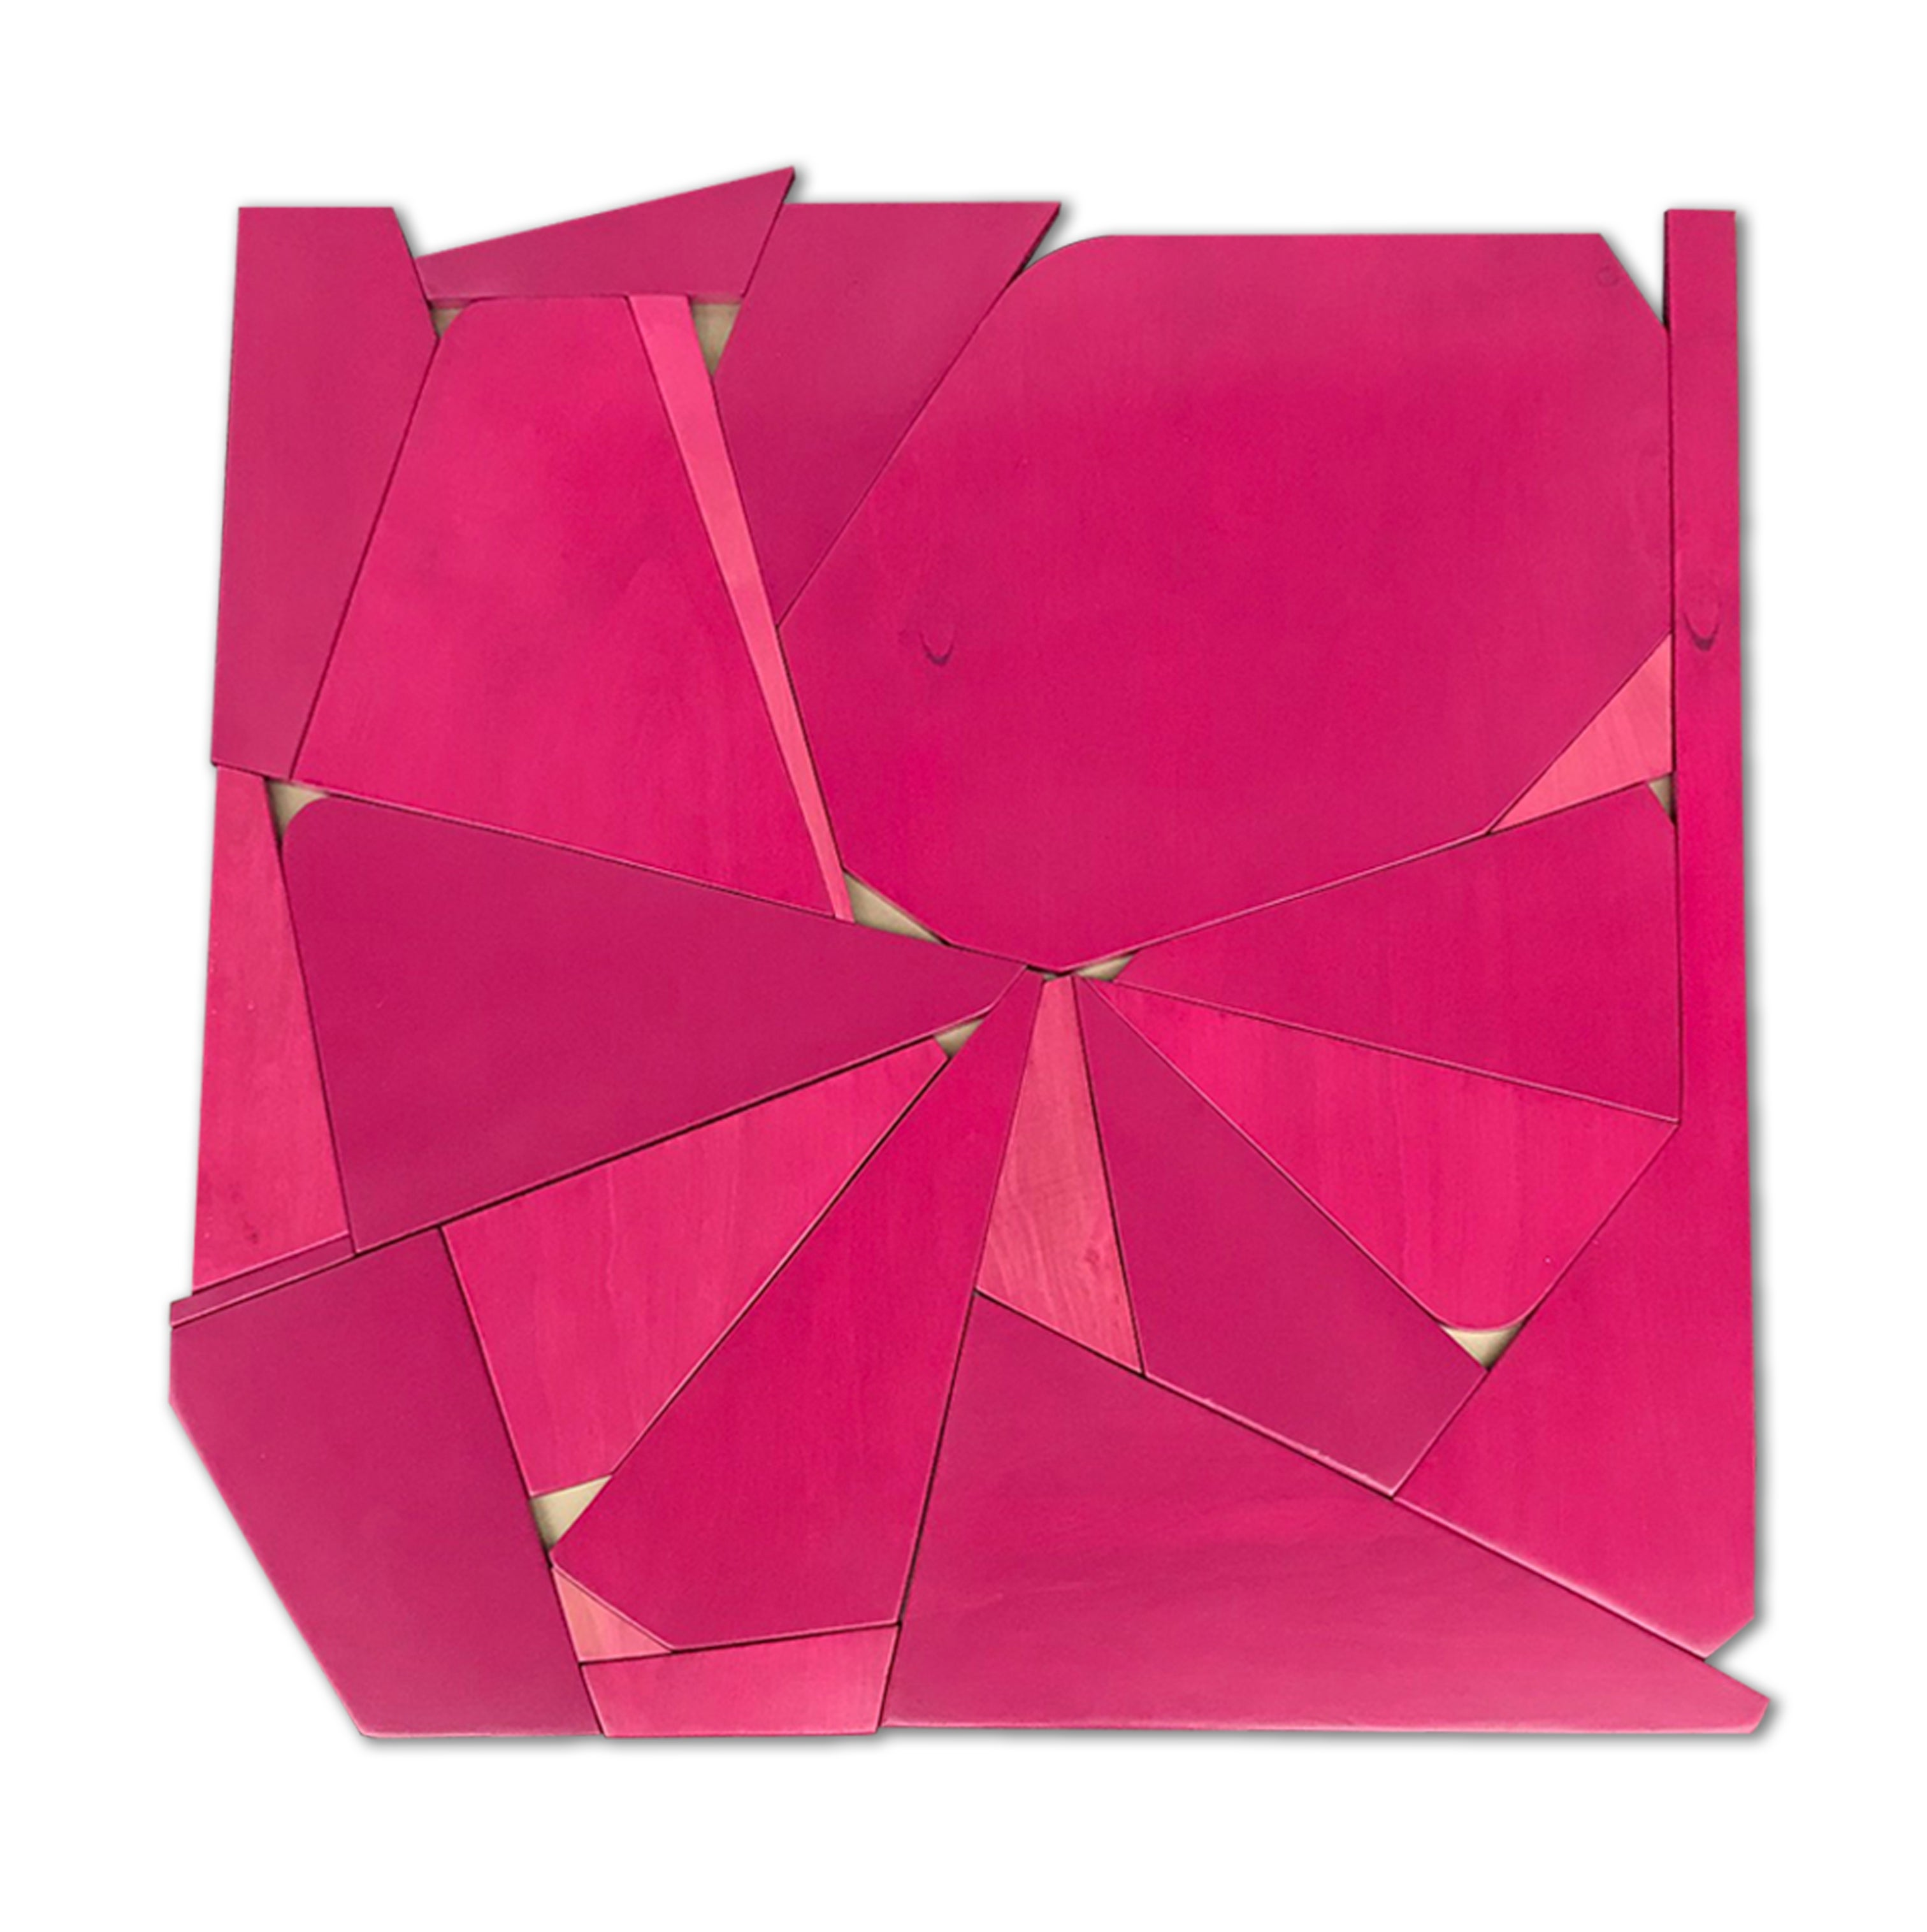 Pinwheel (mangenta modern abstract wall sculpture minimal geometric design pink)